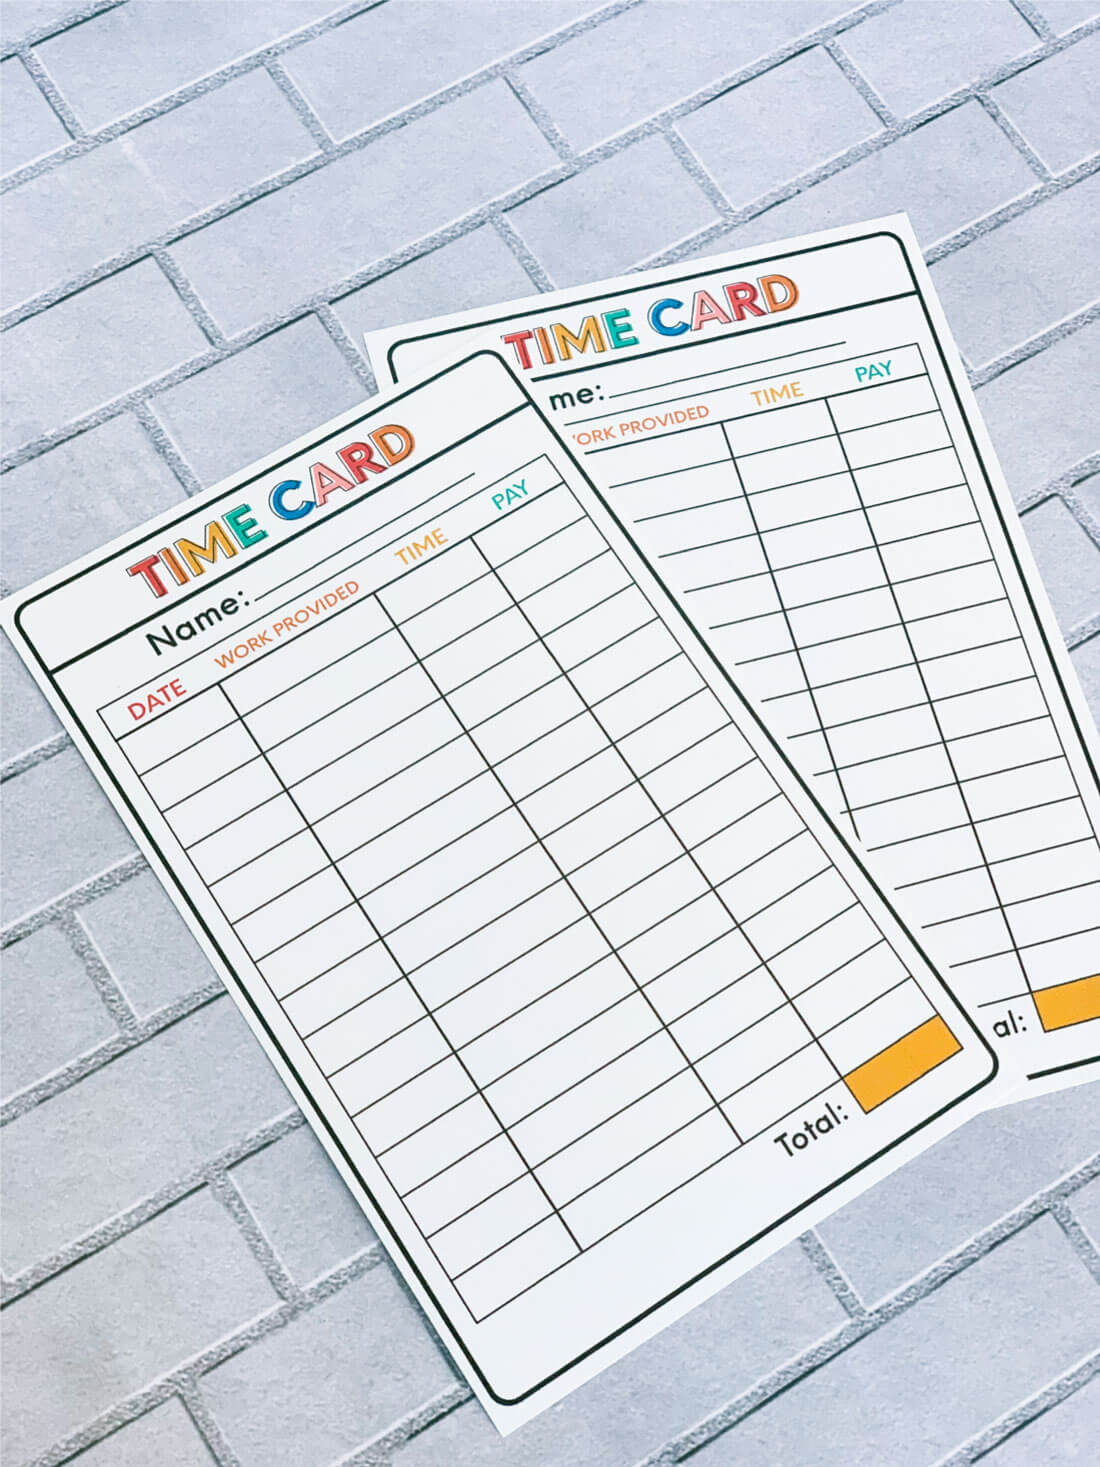 Chore List Idea Printable Time Card